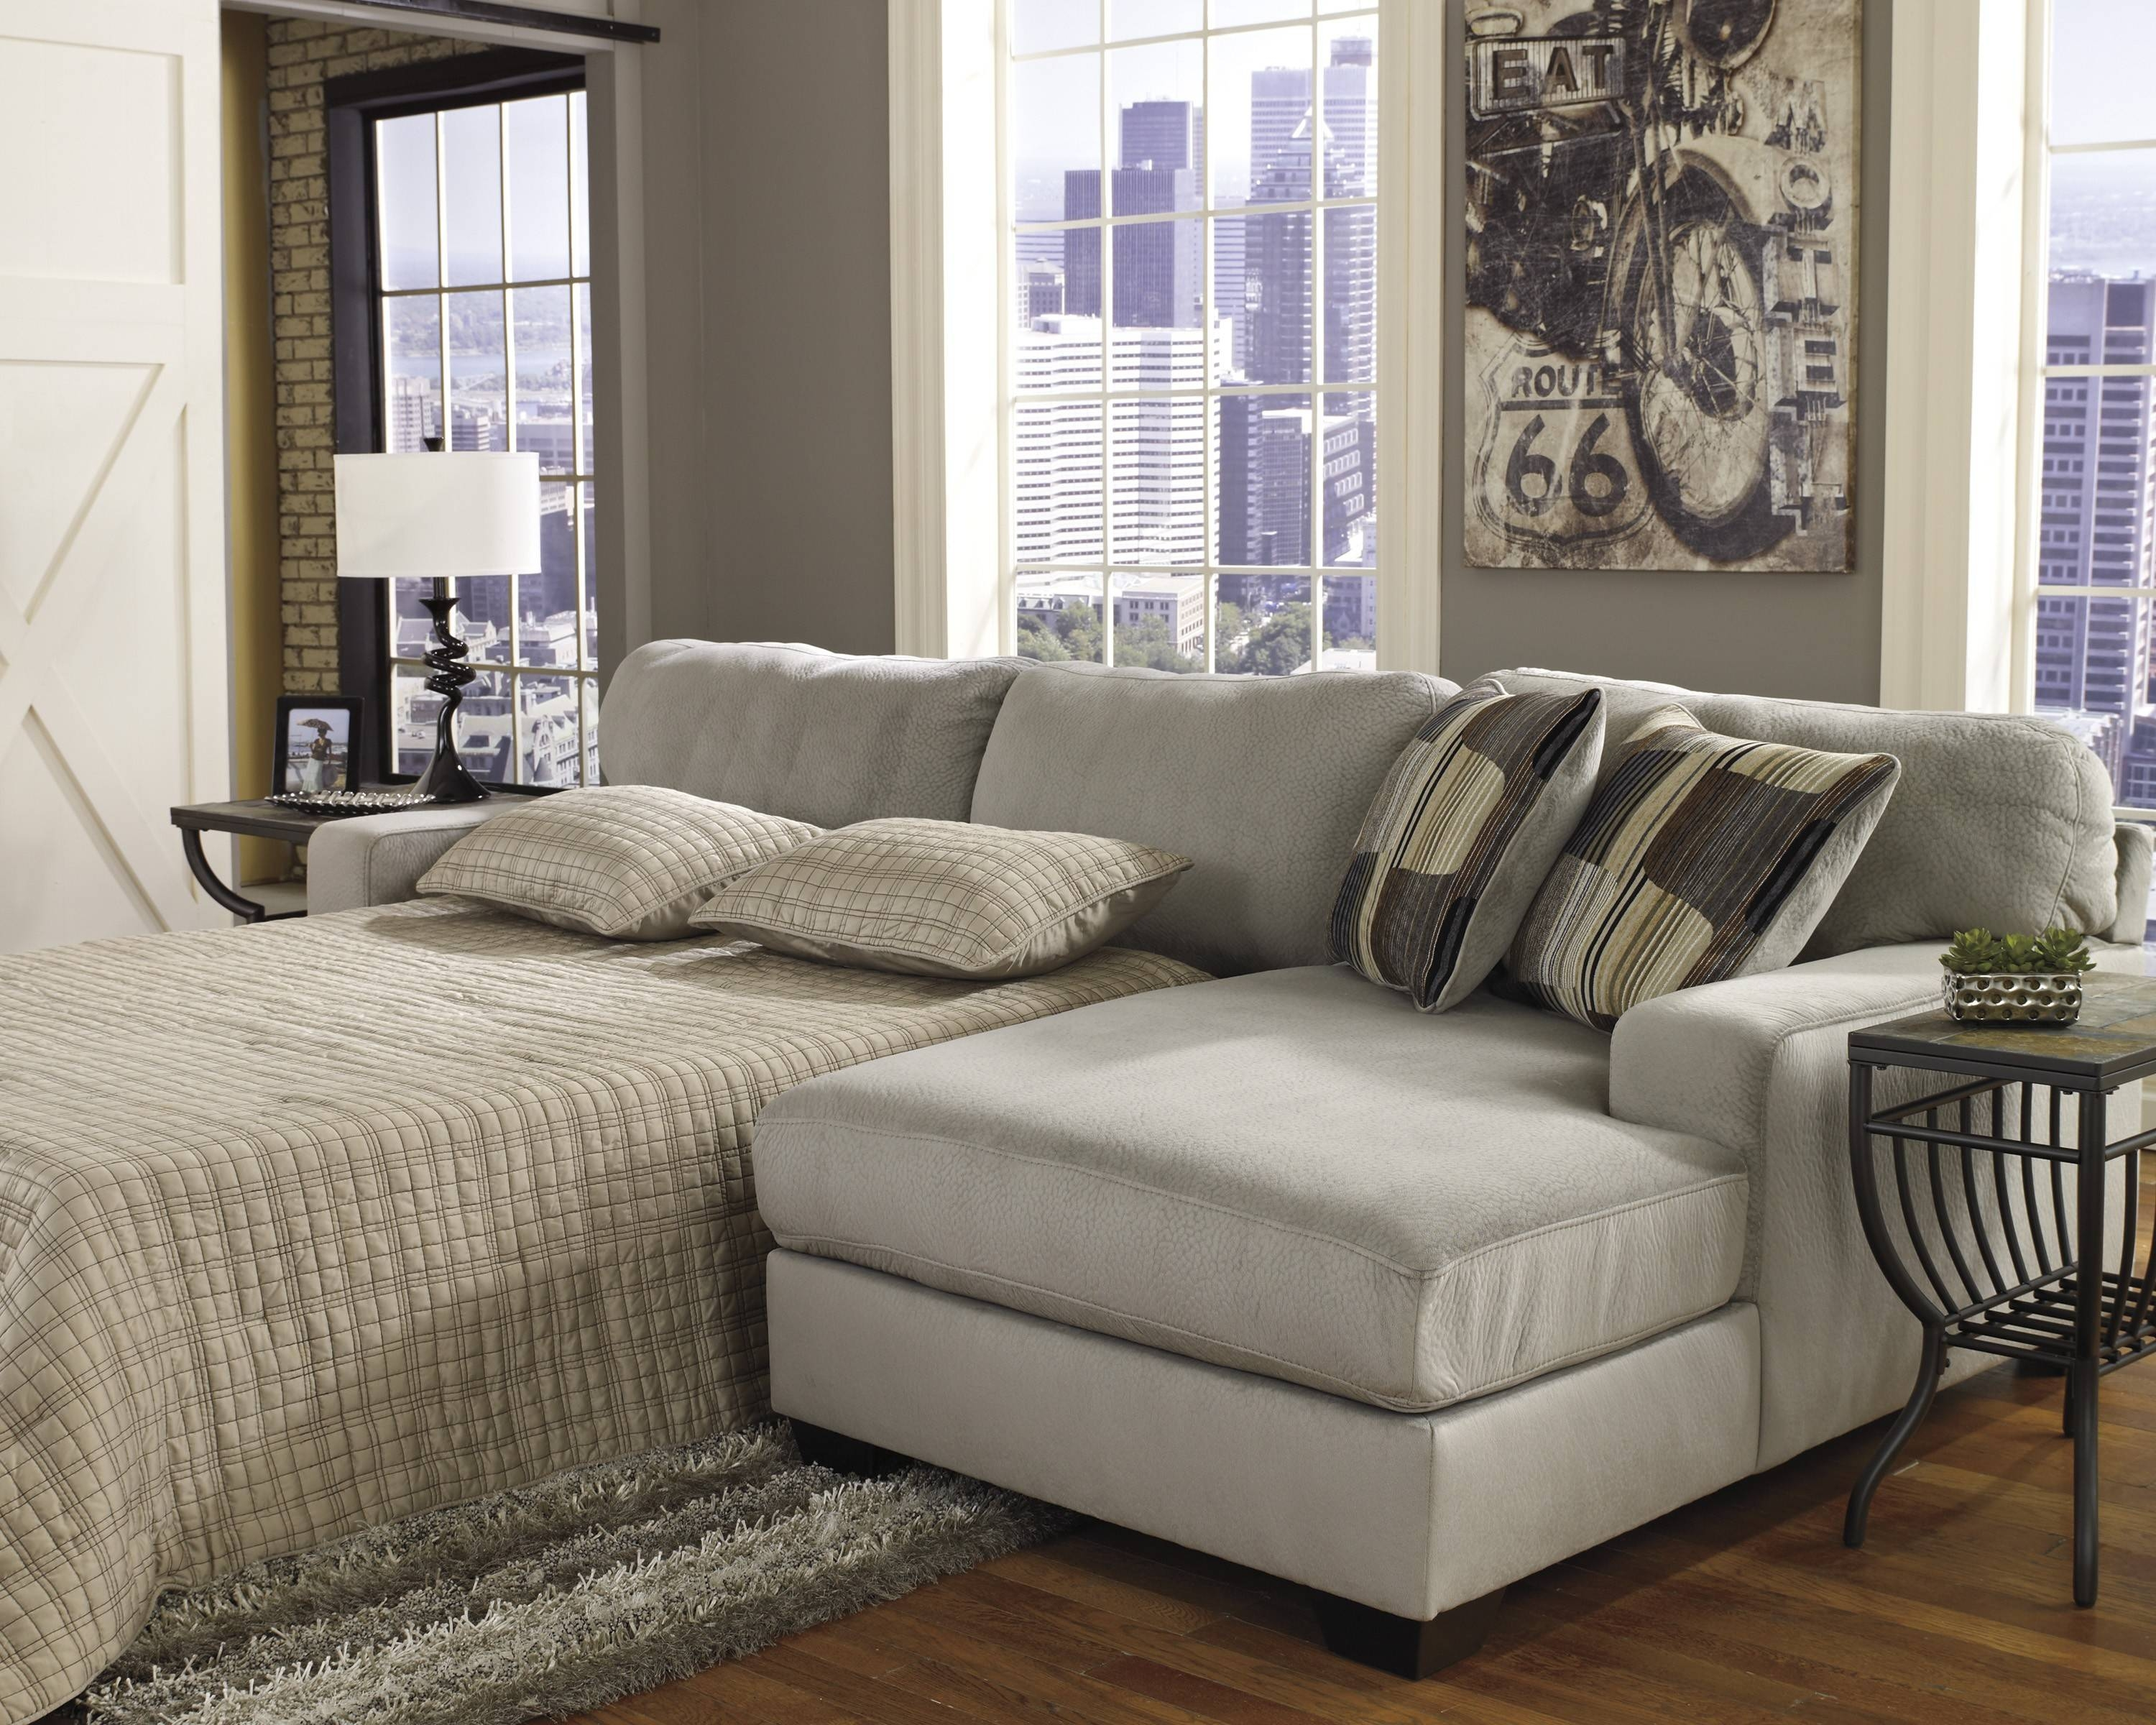 Furniture Amazing Living Spaces Sofas Inspiration Living Spaces intended for Apartment Size Sofas And Sectionals (Image 17 of 30)